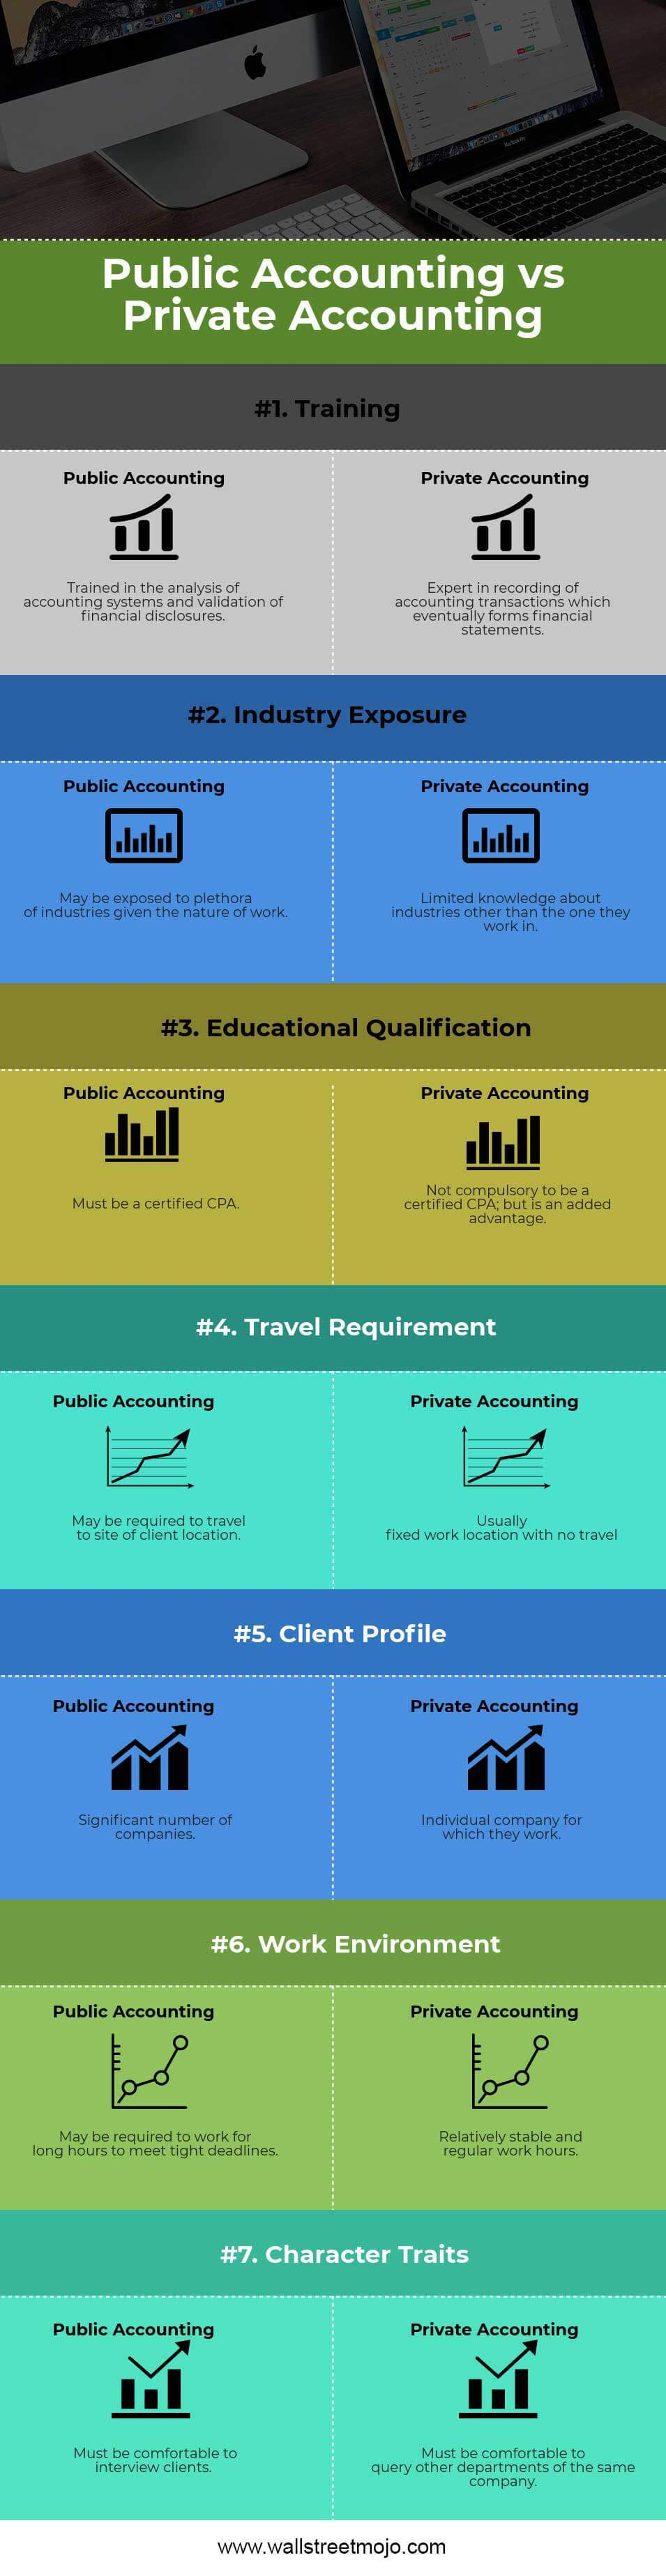 Public-Accounting-vs-Private-Accounting